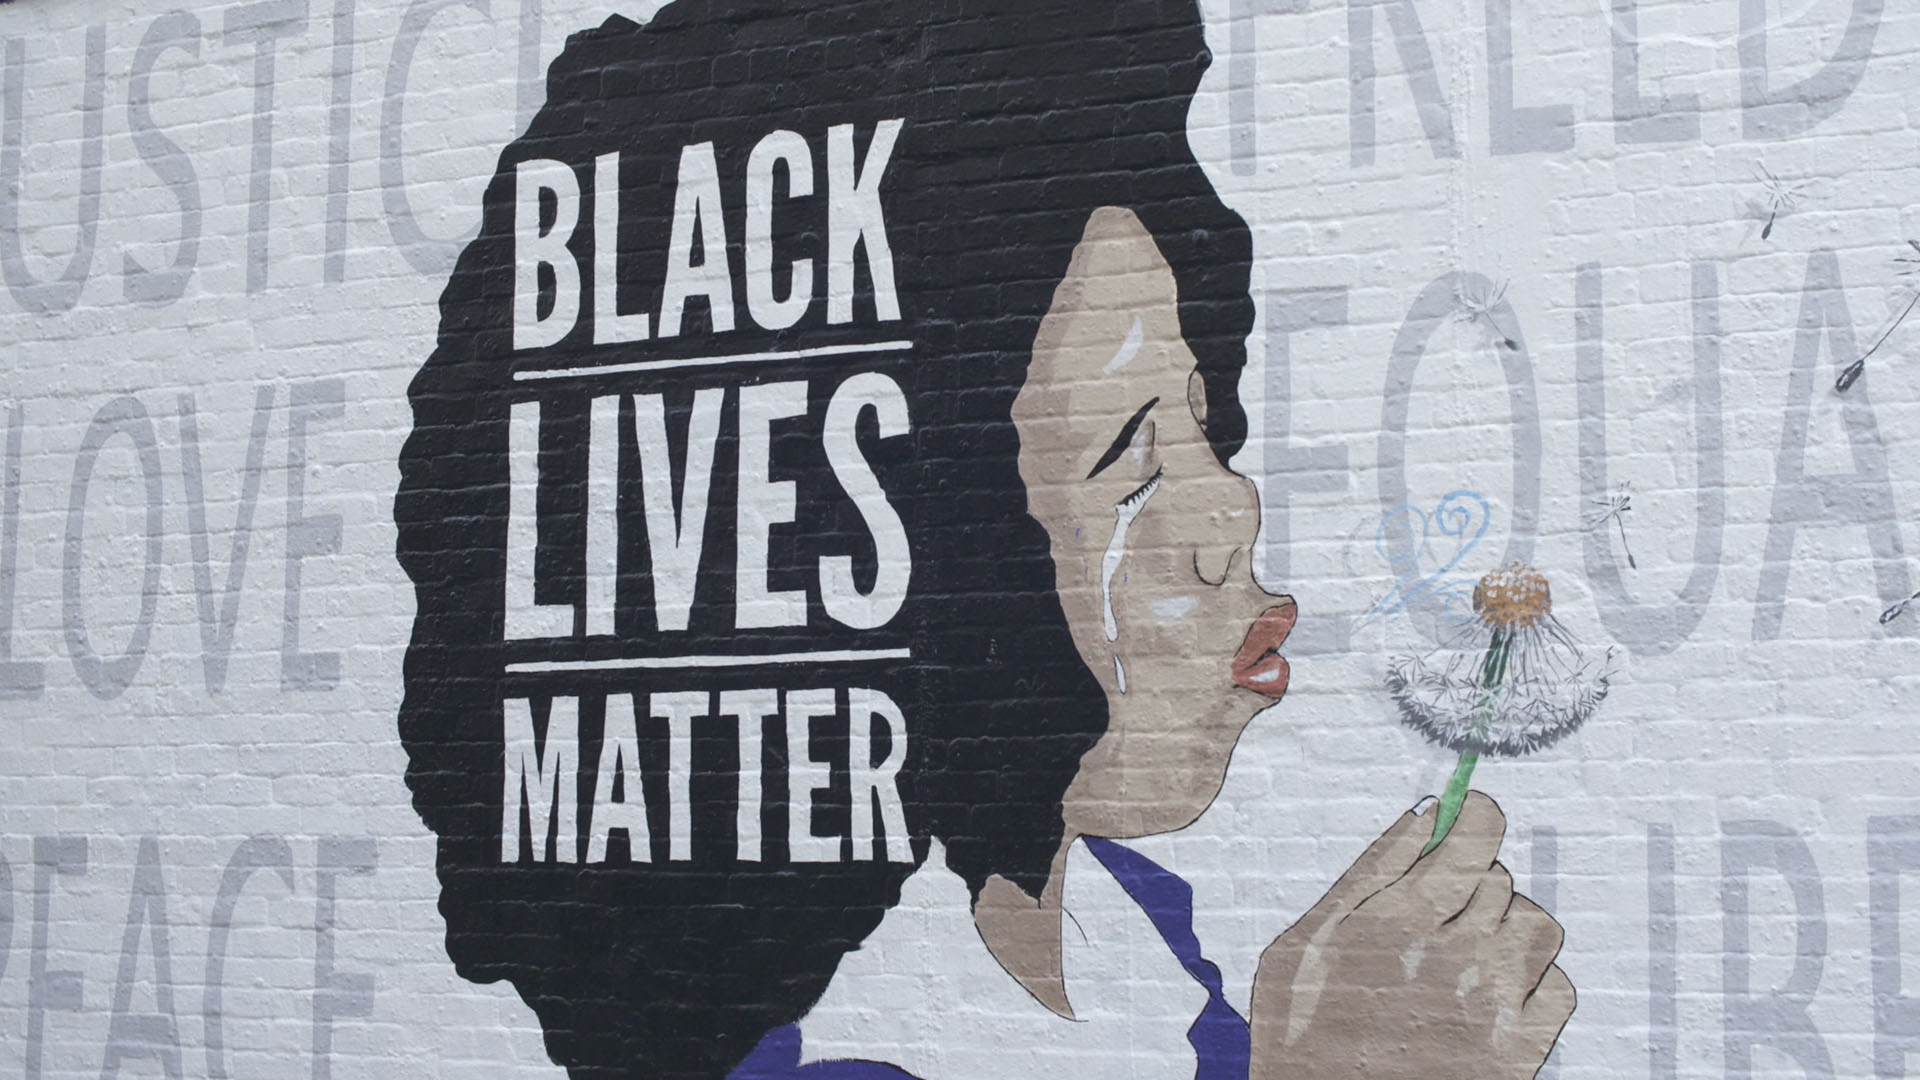 A Black Lives Matter mural painted by Robbie Lee Harris June 2020 at Tucson's Rialto Theatre.